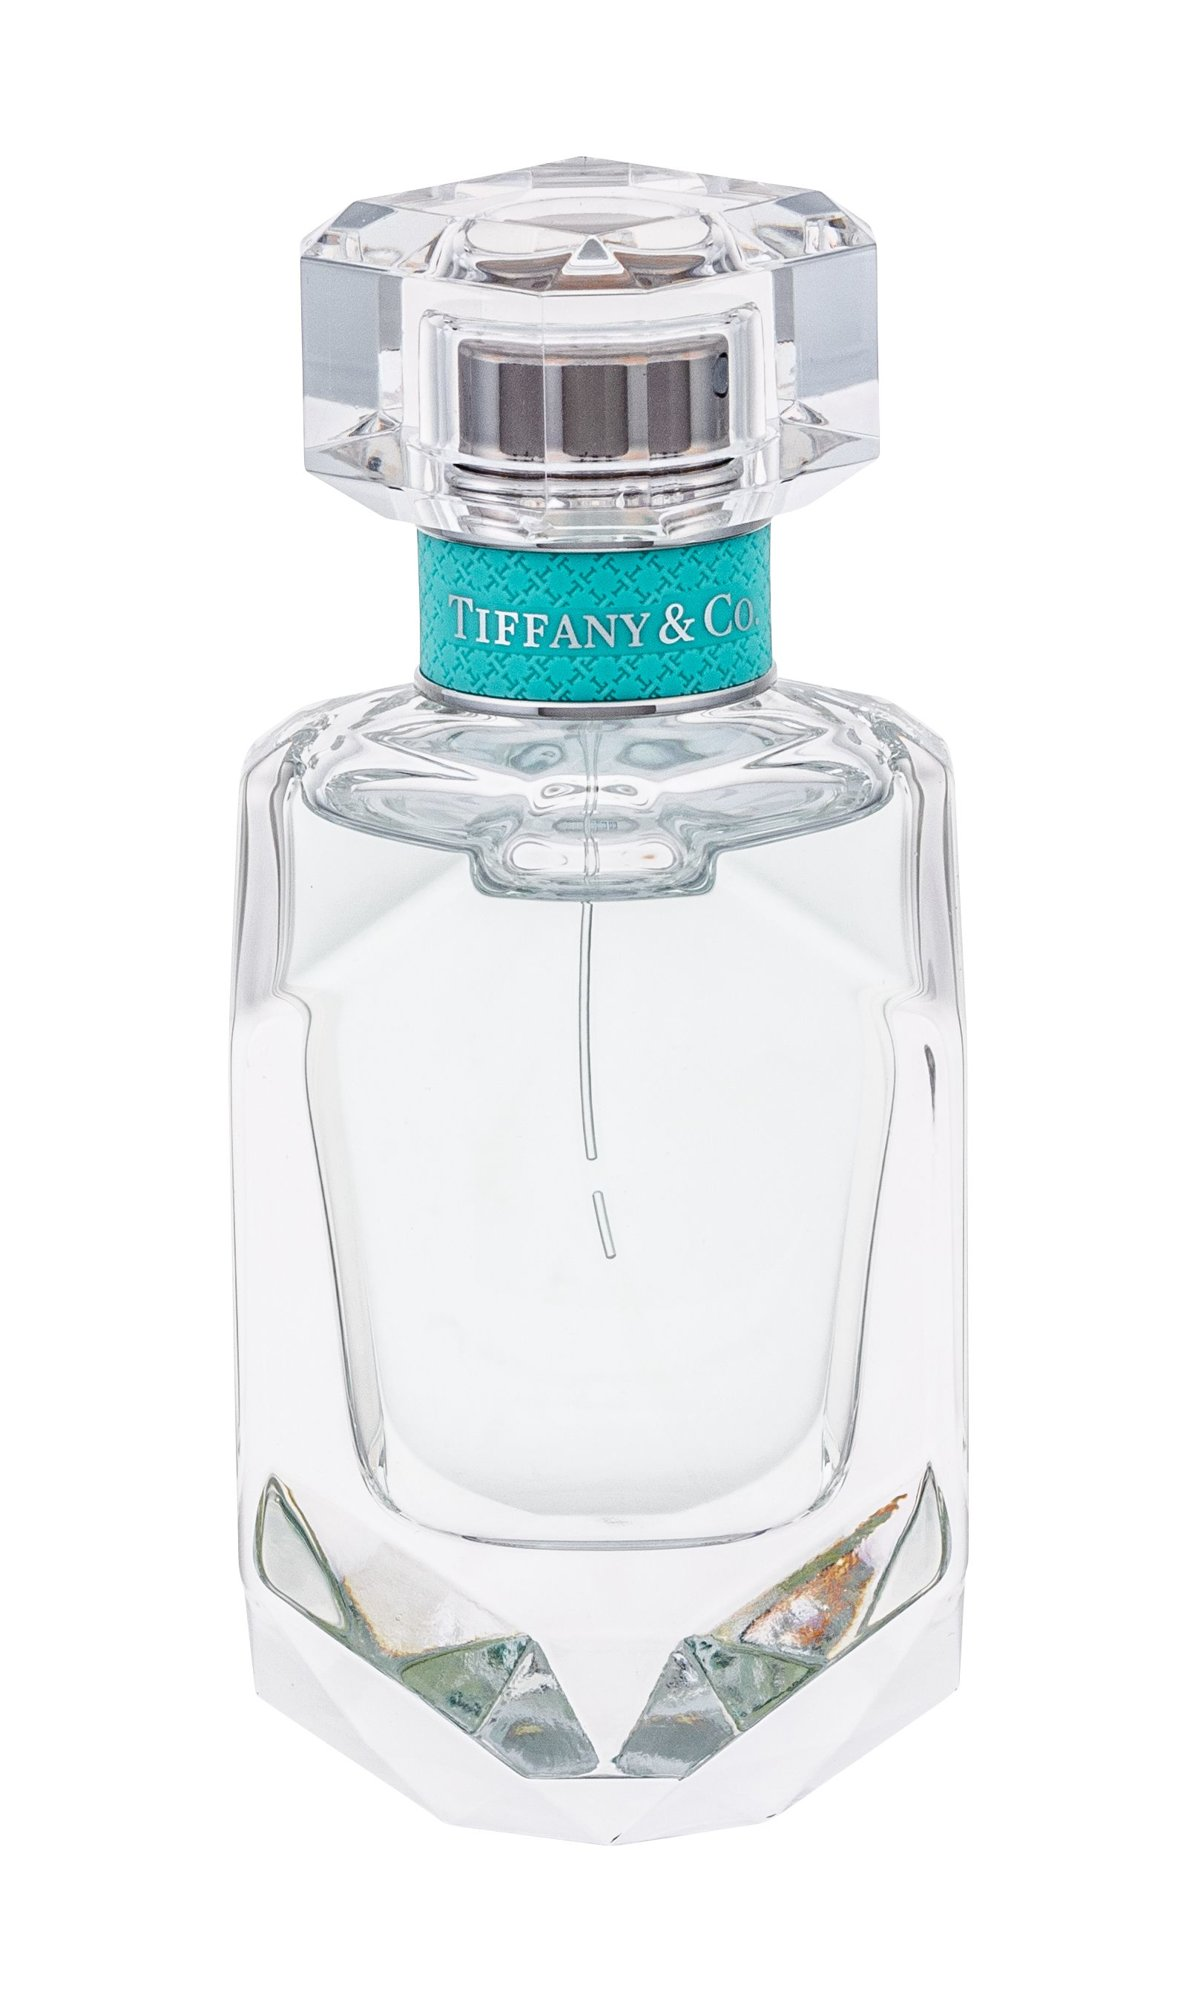 Tiffany & Co. Tiffany & Co. EDP 50ml